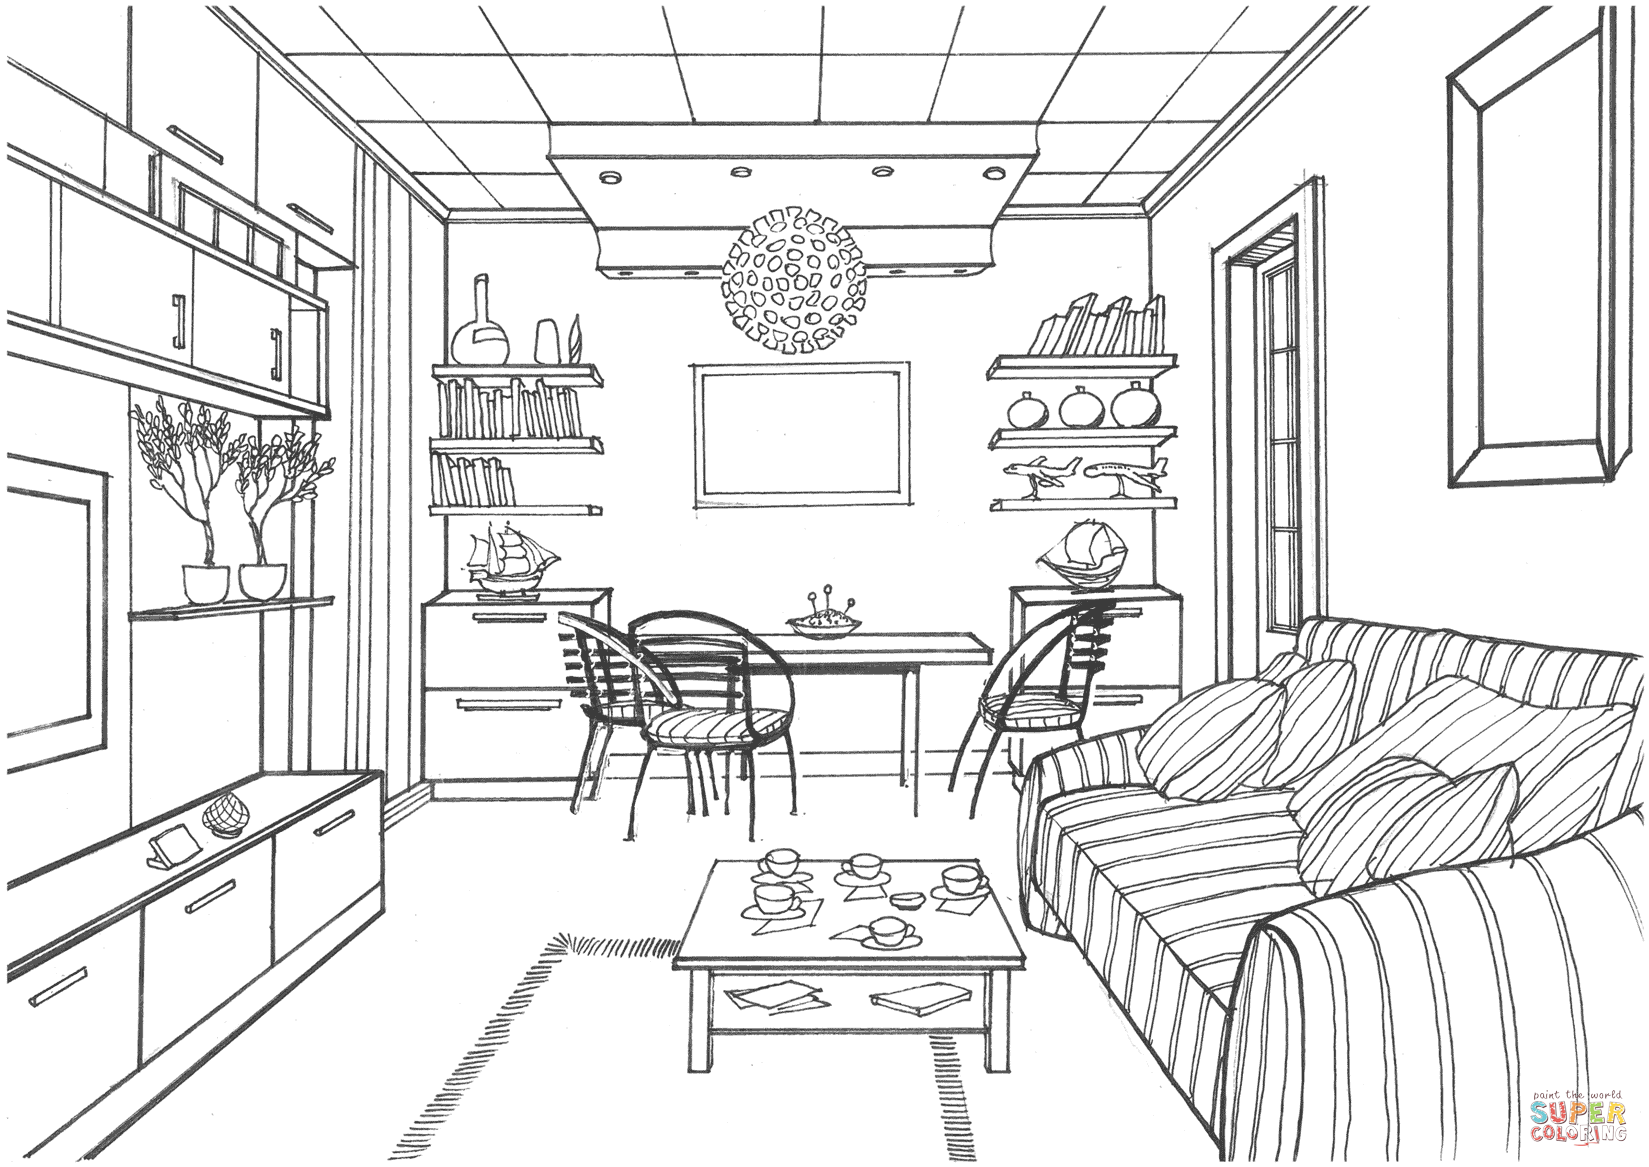 Living Room With A Luminous Ball Coloring Page From Interior Design Category Select Interior Design Drawings Interior Design Sketches Room Perspective Drawing